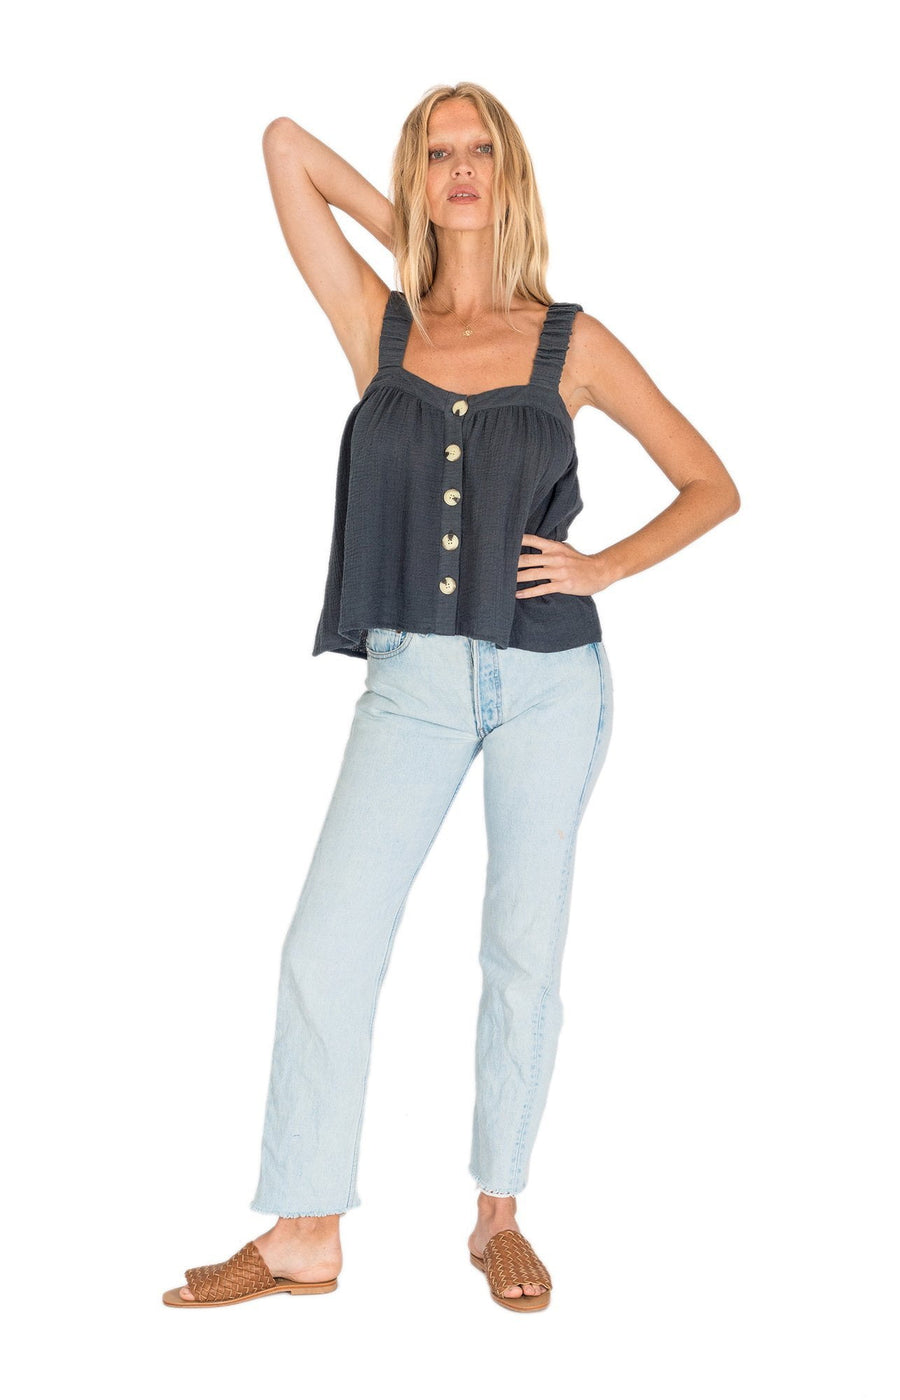 The Bare Road Poppy Top Charcoal